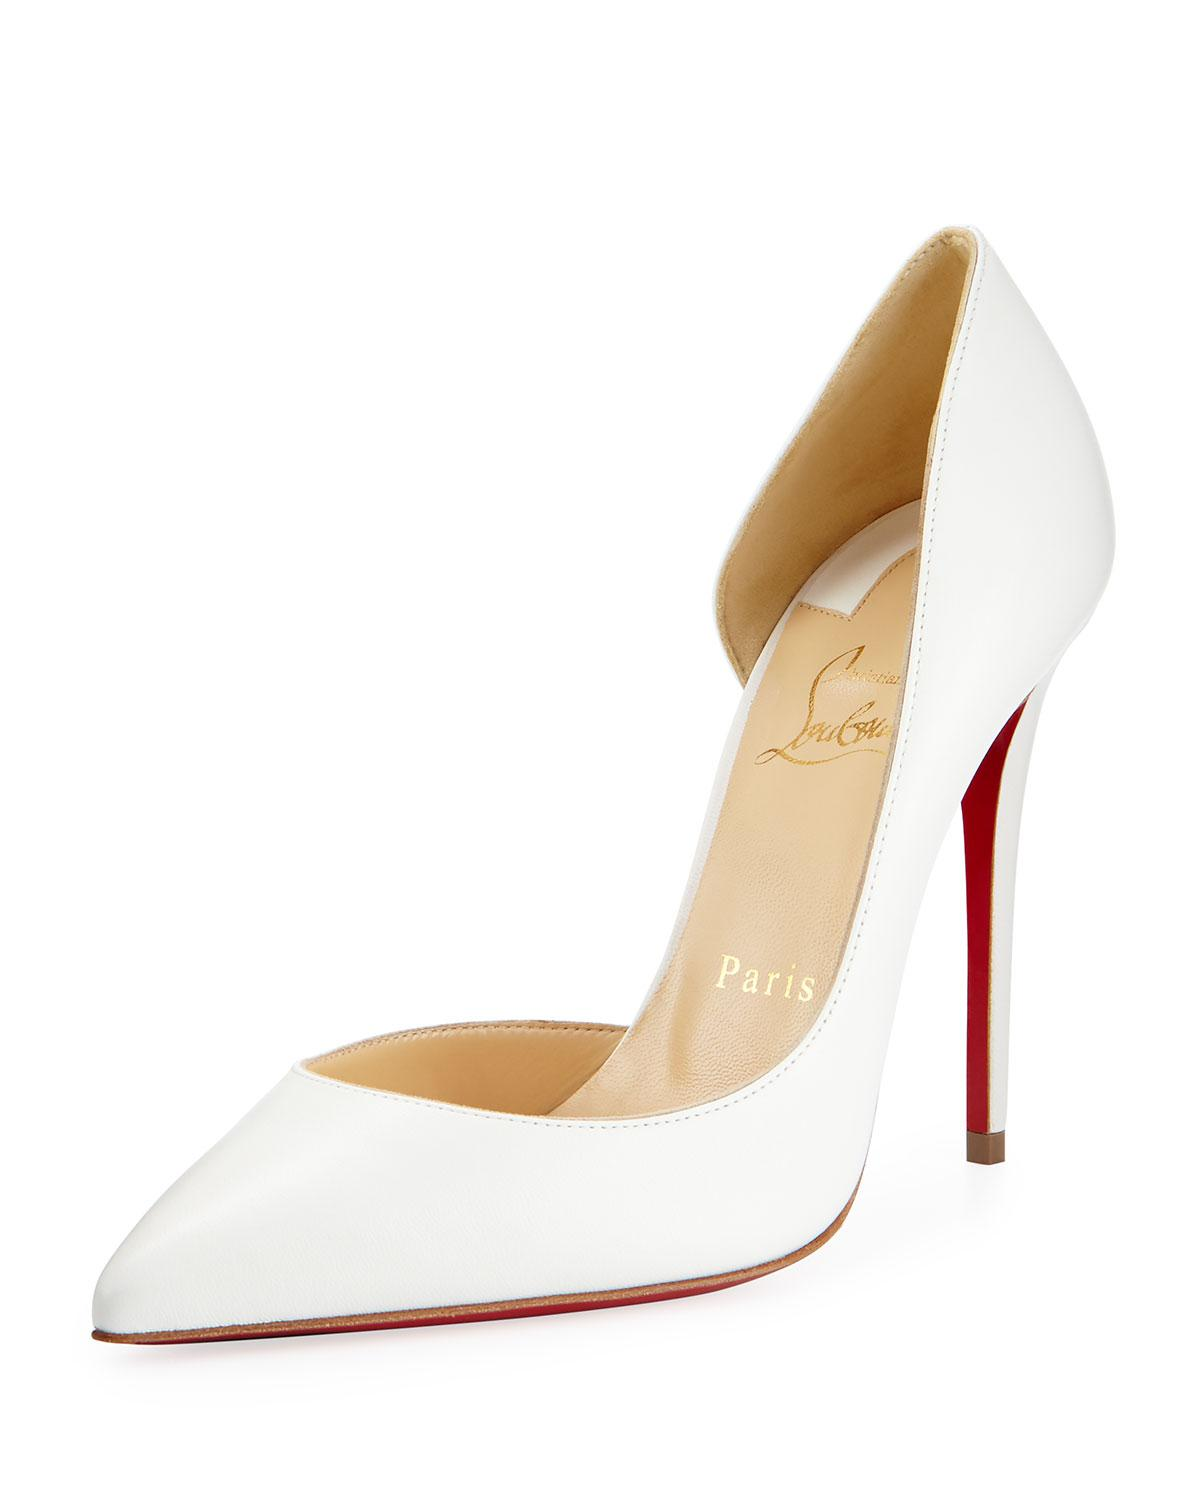 78e1b2628496 Lyst - Christian Louboutin Iriza Half-d orsay 100mm Red Sole Pump in ...